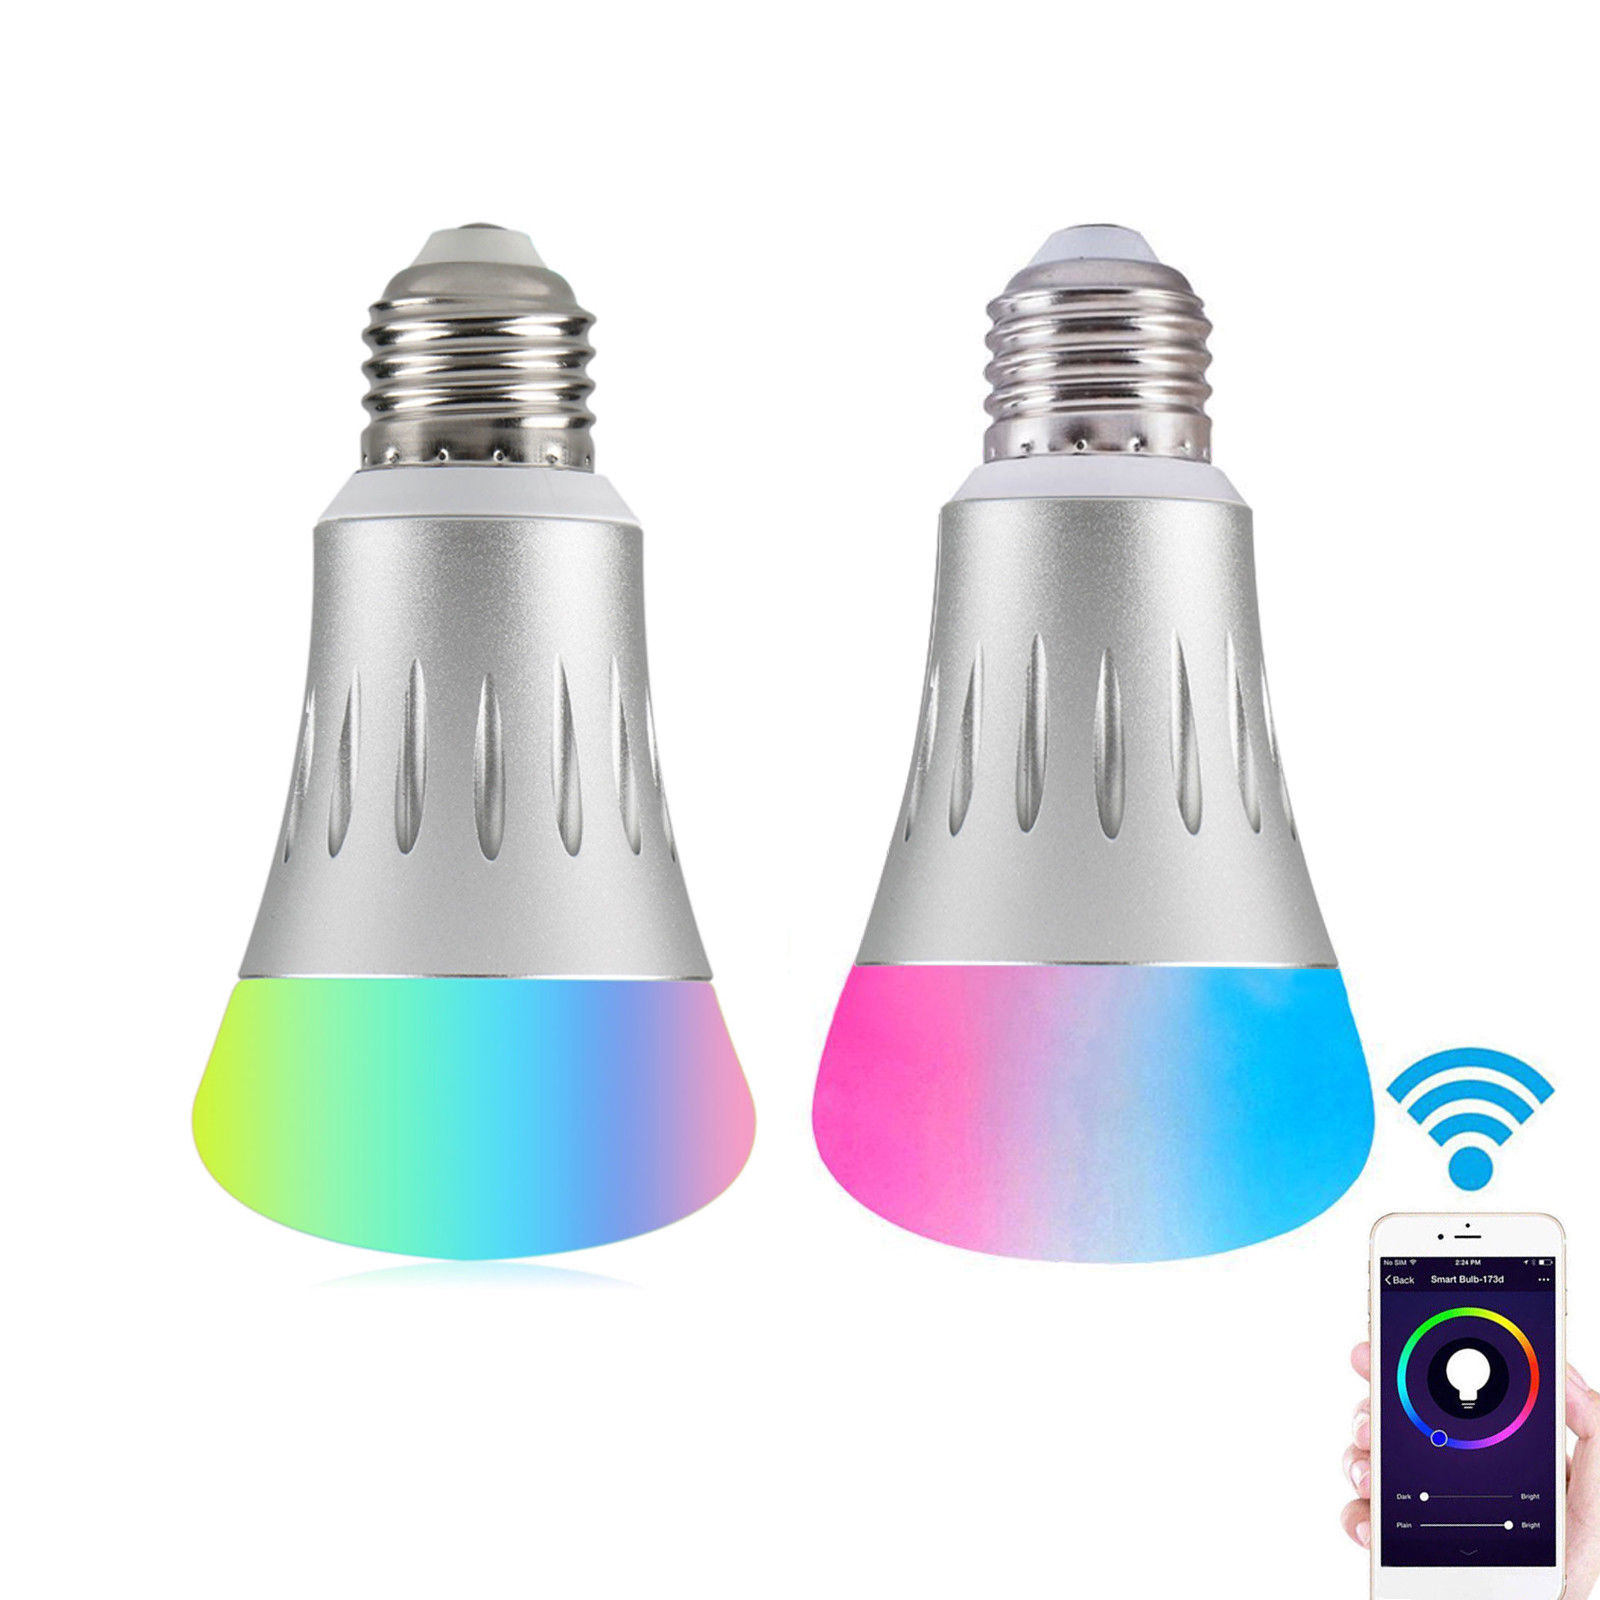 Smart Bulb, EEEKit Wifi Wireless Remote Control 7W E27 LED Light Dimmable Lamp Light for Amazon Echo Alexa, 2-Pack